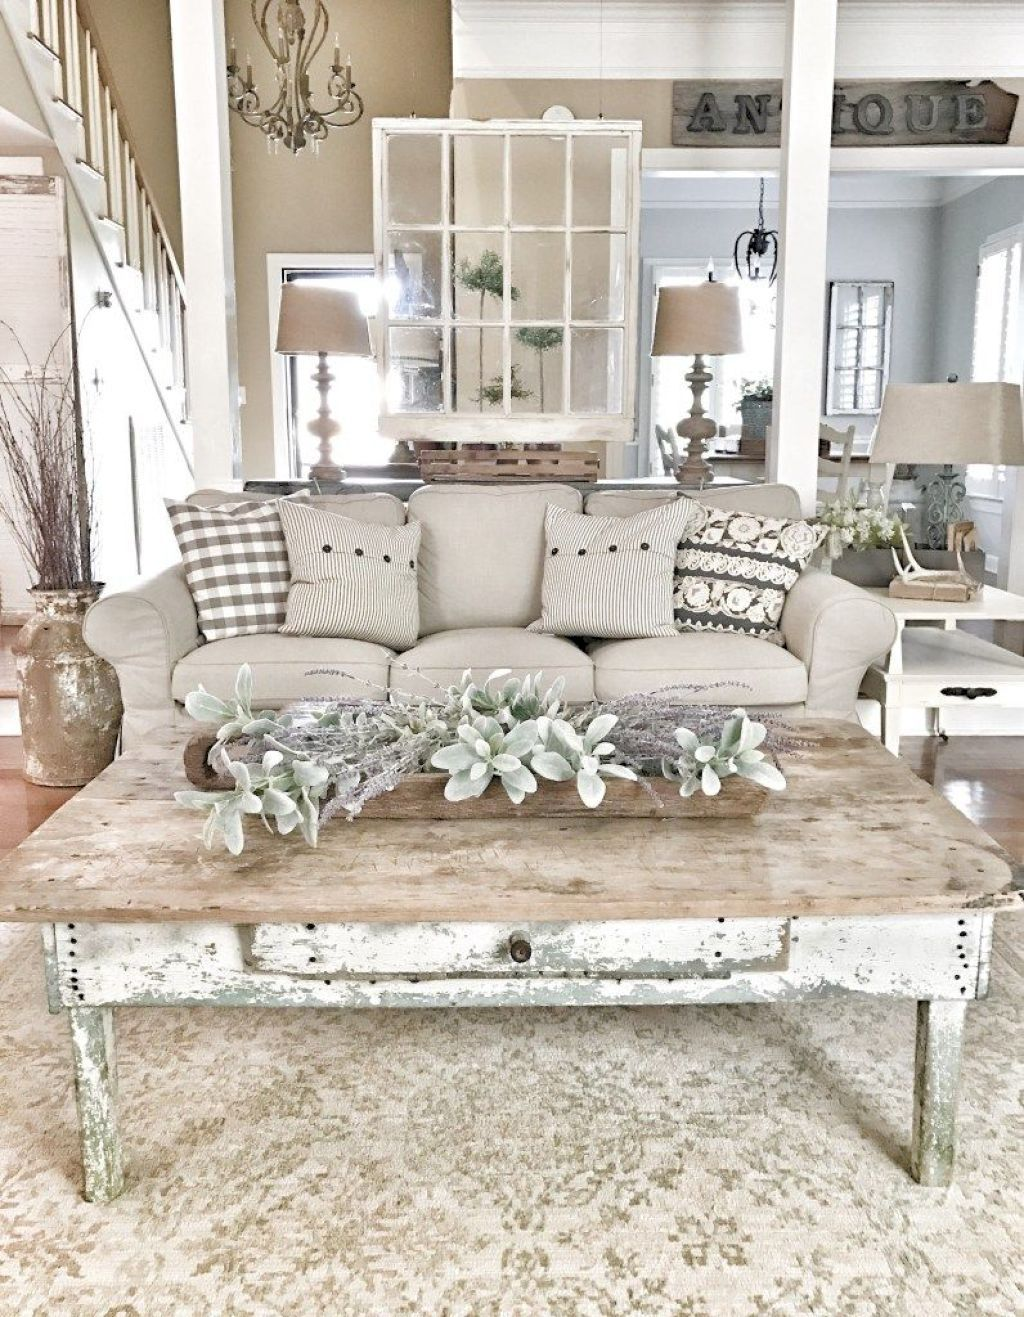 Living Room Decoration: These 20 Farmhouse Living Room Decor And Design Ideas Are